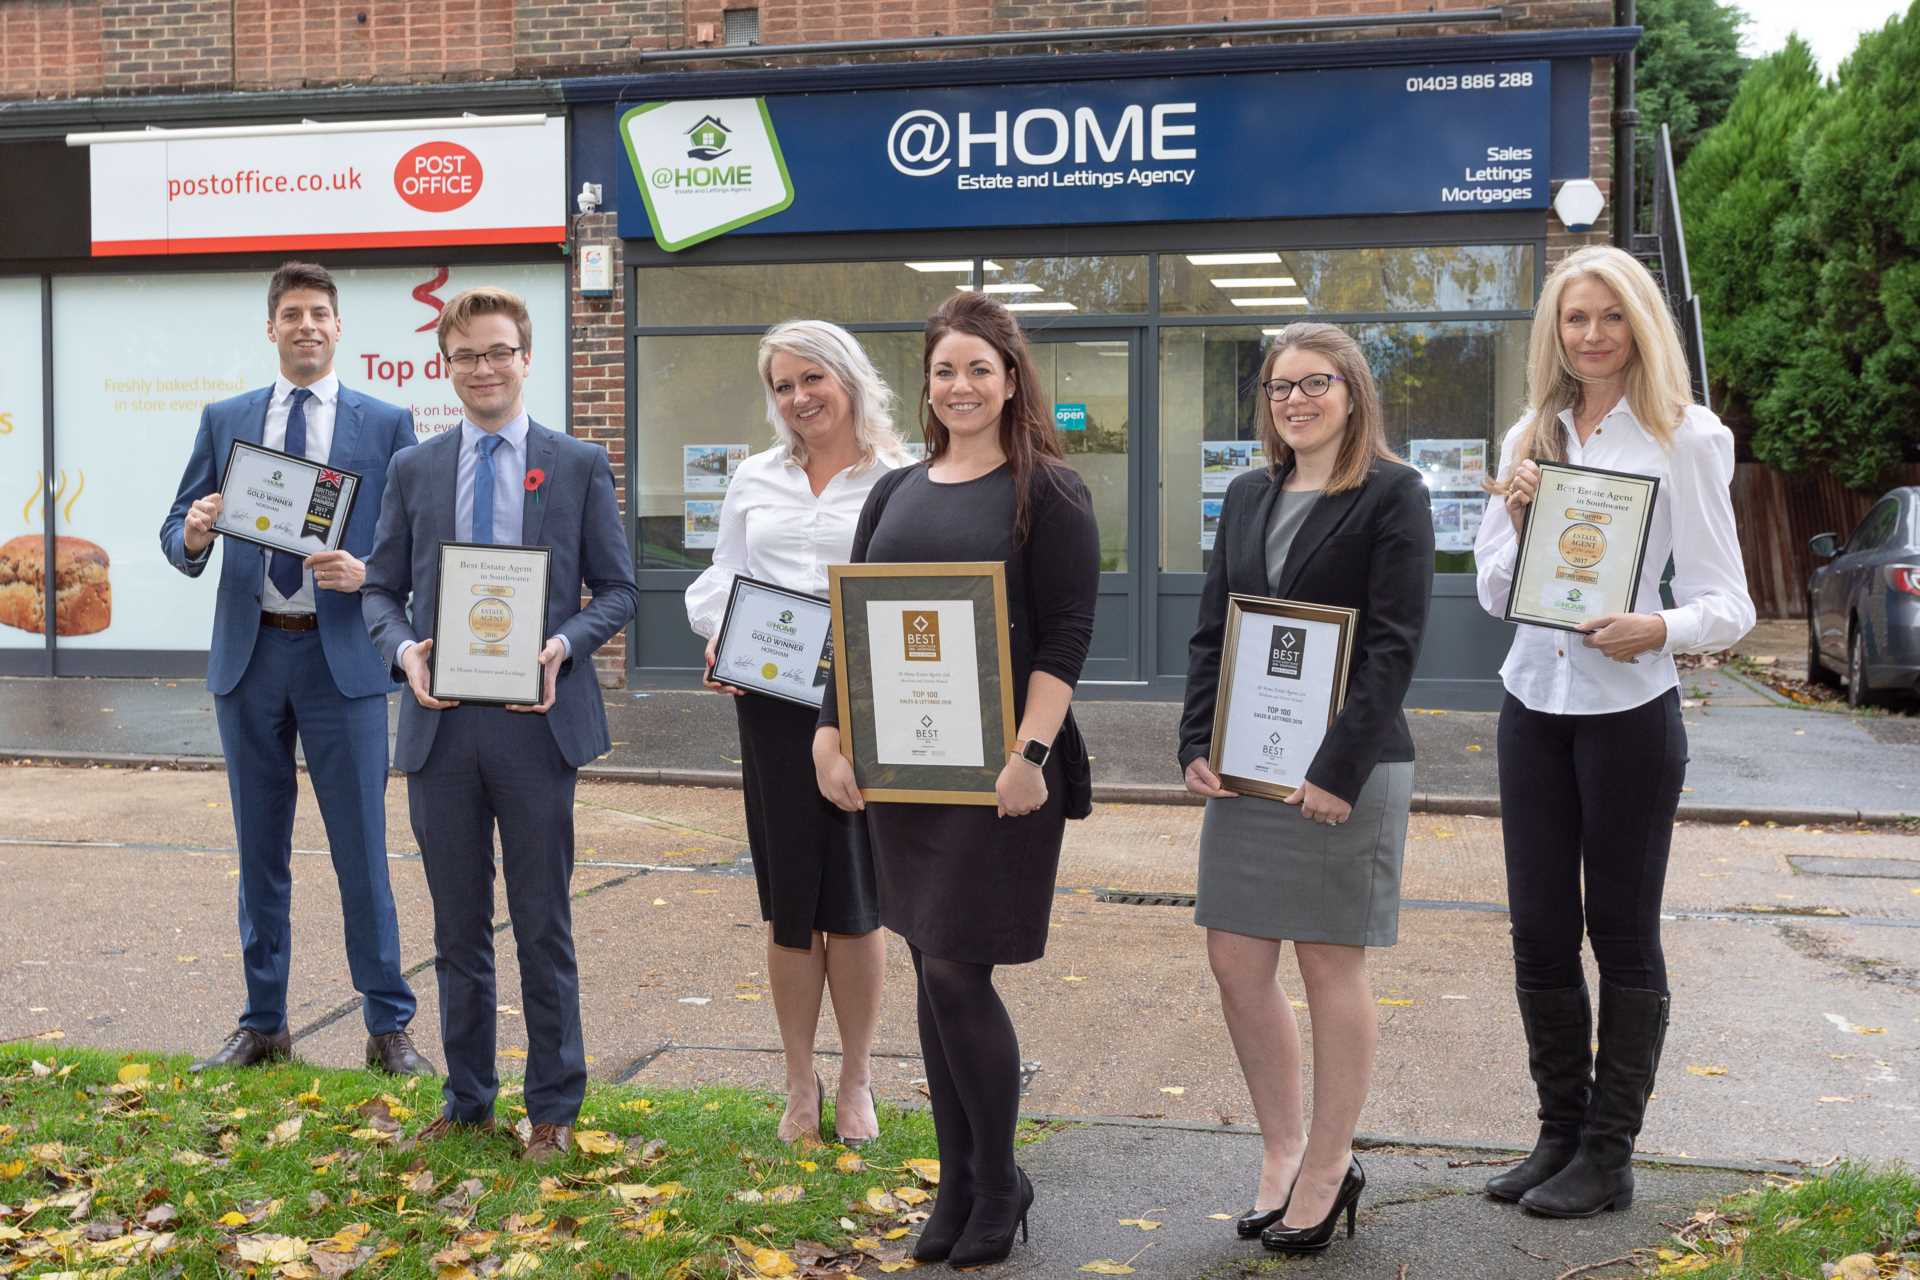 @Home win Best Estate and Lettings agency in West Sussex again!